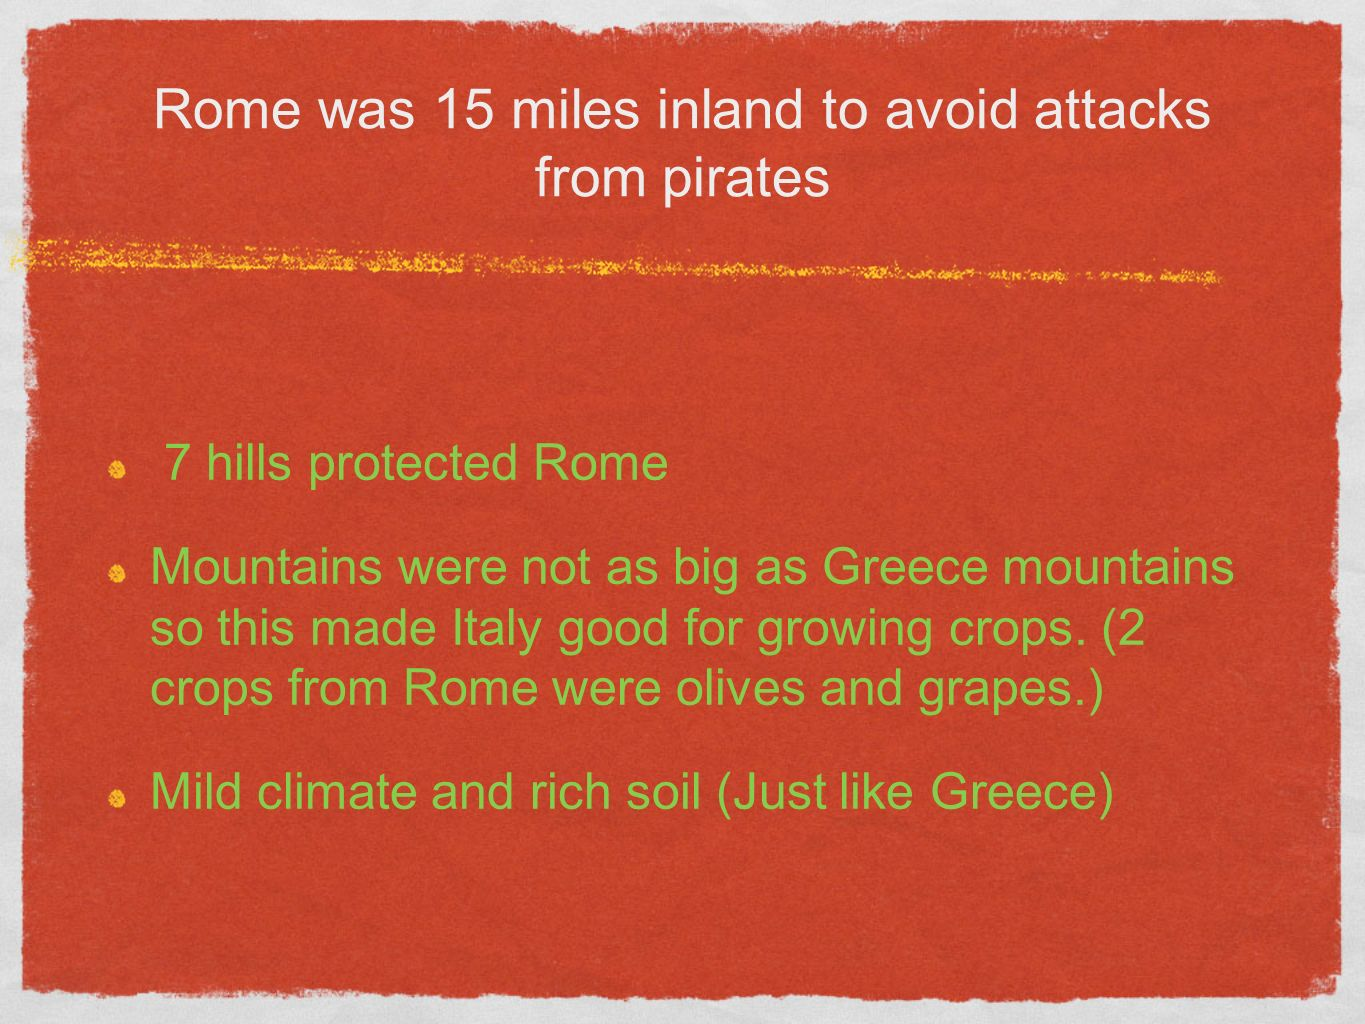 Rome was 15 miles inland to avoid attacks from pirates 7 hills protected Rome Mountains were not as big as Greece mountains so this made Italy good for growing crops.